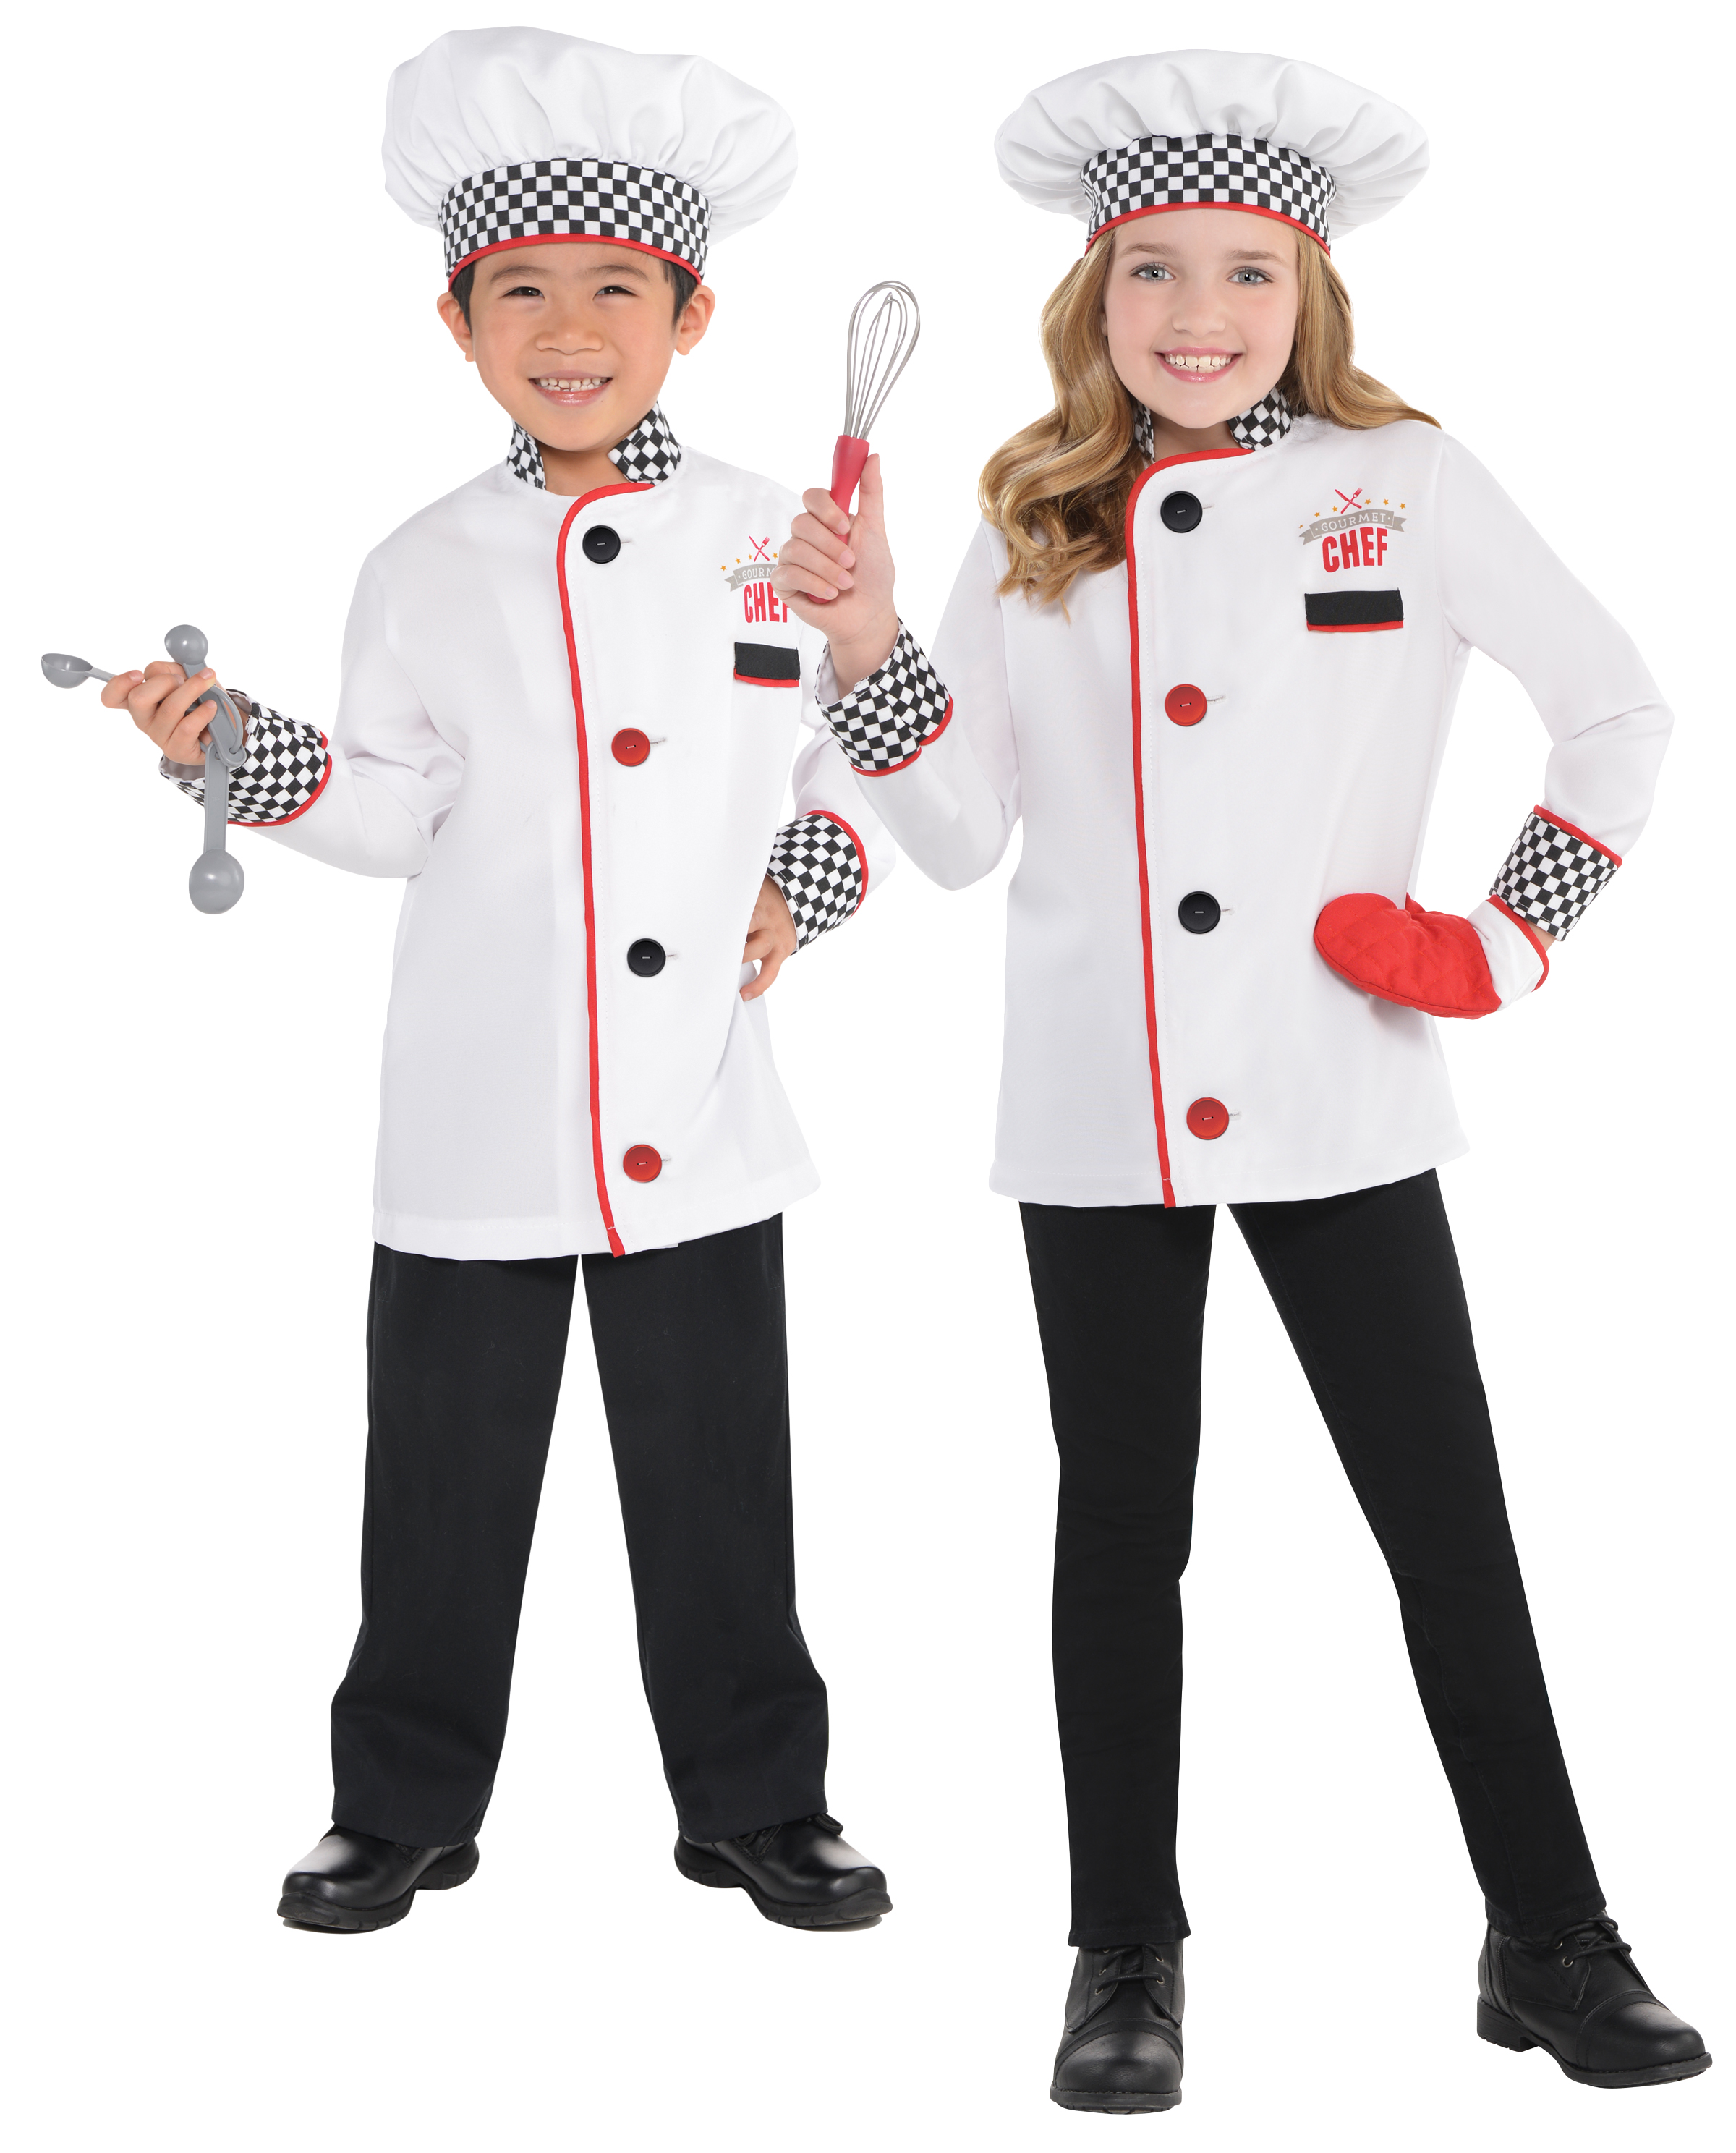 You searched for: kids chef costume! Etsy is the home to thousands of handmade, vintage, and one-of-a-kind products and gifts related to your search. No matter what you're looking for or where you are in the world, our global marketplace of sellers can help you find unique and affordable options. Let's get started!